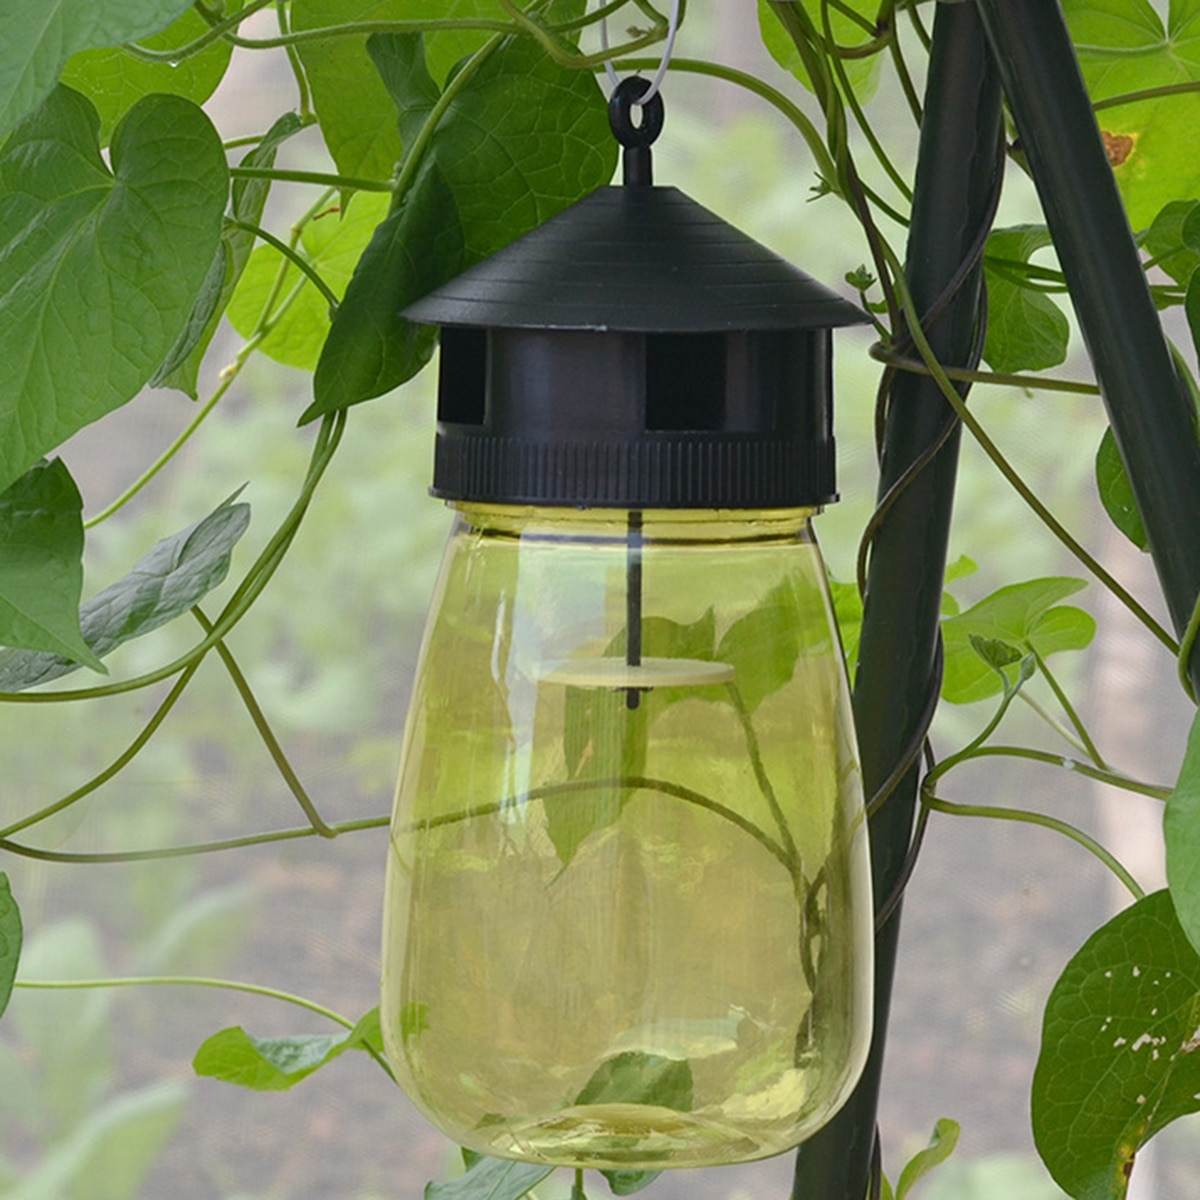 Wasp Trap Fruit Fly Flies Insect Fly Catcher Reusable Hanging Honey-Trap Catcher No-Poison Trap Bottle Fly Killer Fly Trap